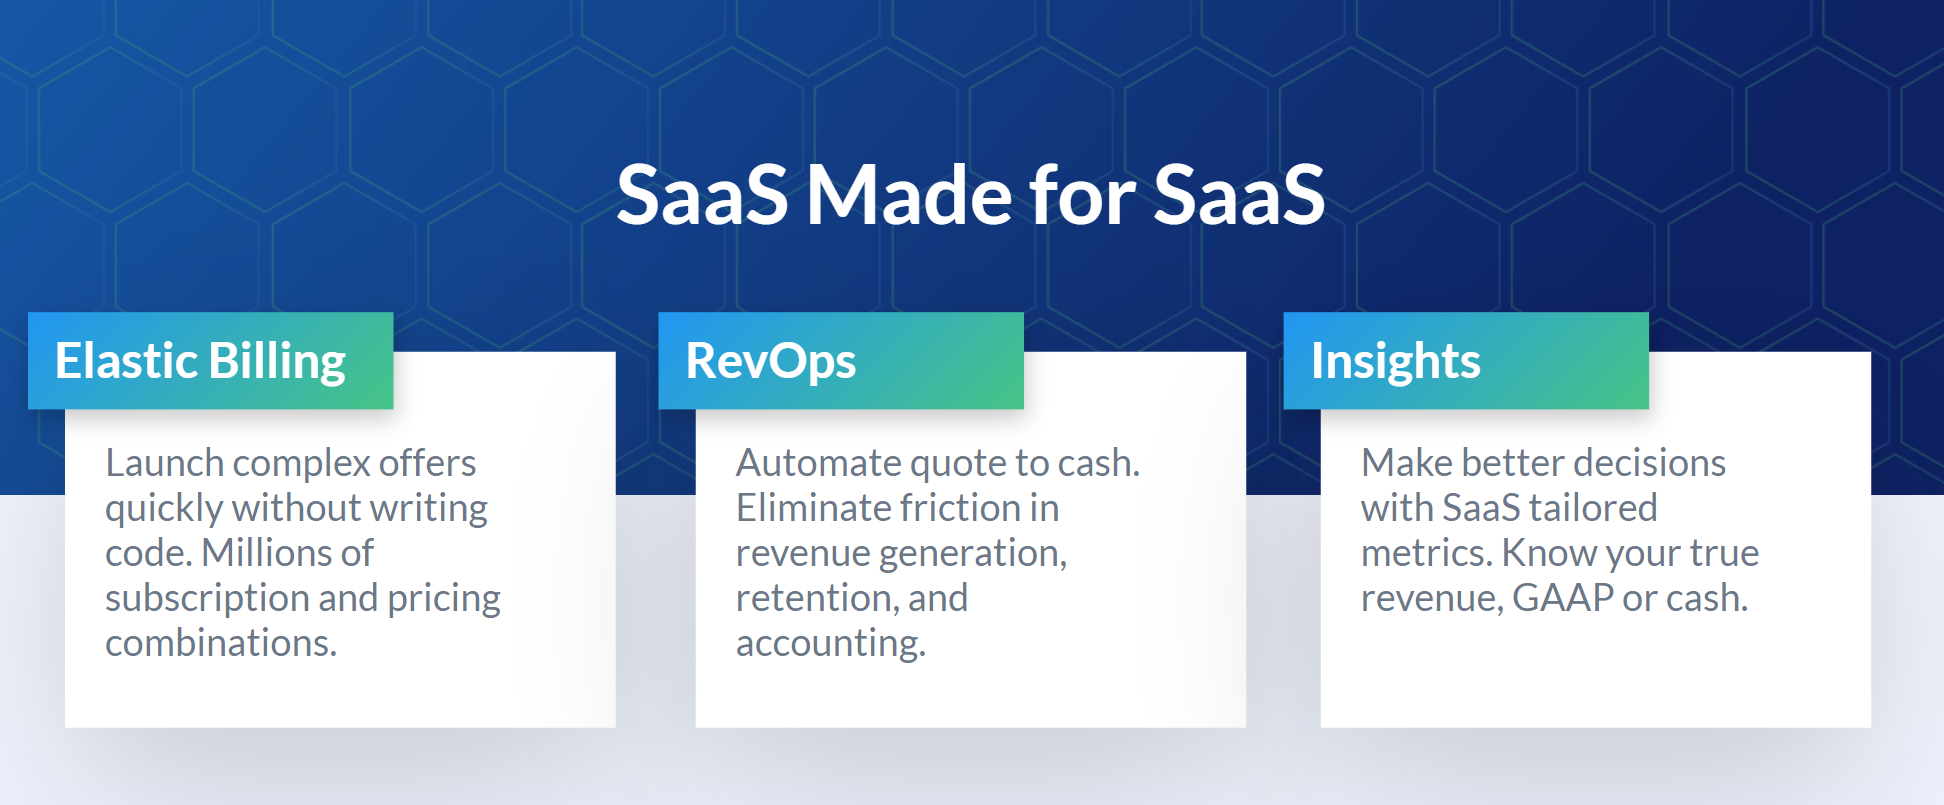 The three tiers of SaaS revenue management: elastic billing, RevOps, insights